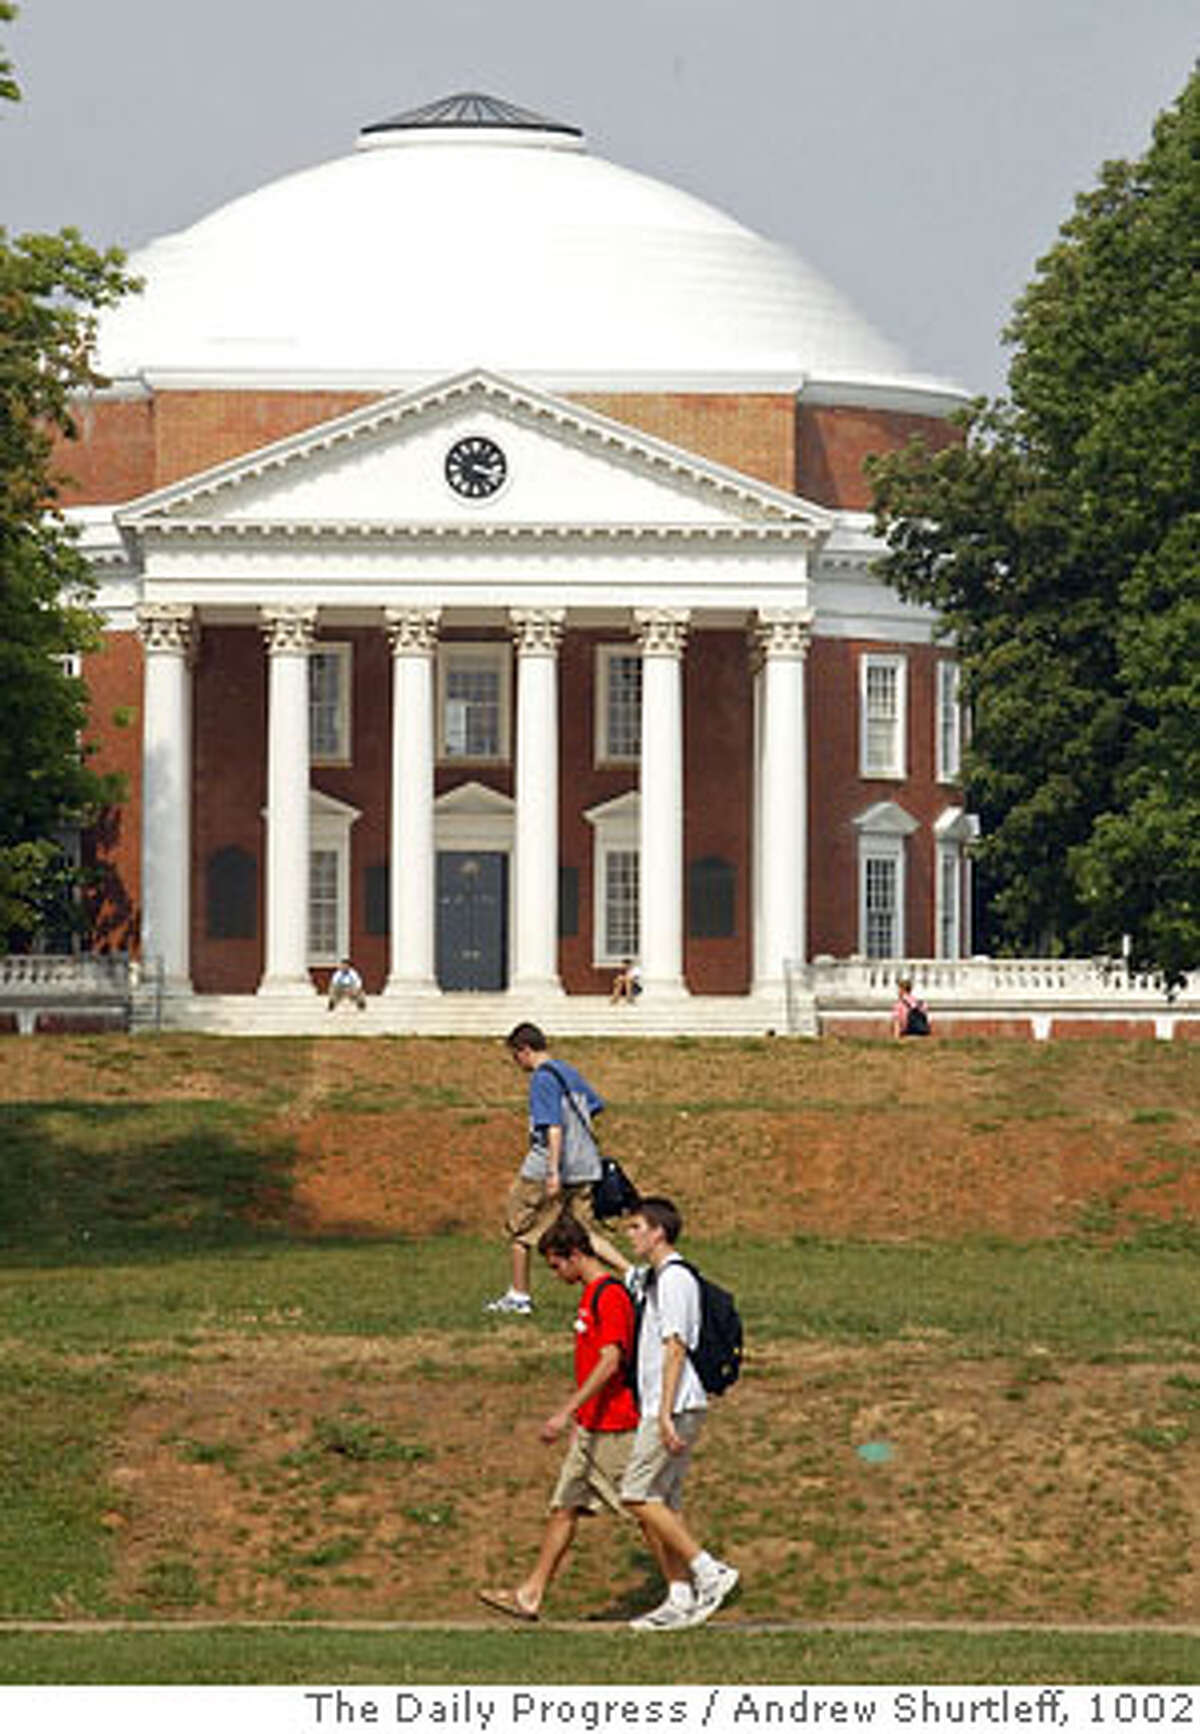 3. Charlottesville, VA. Home of the University of Virginia, the picturesque town offers a variety of options for shopping, dining and drinking. Source: Travel & Leisure